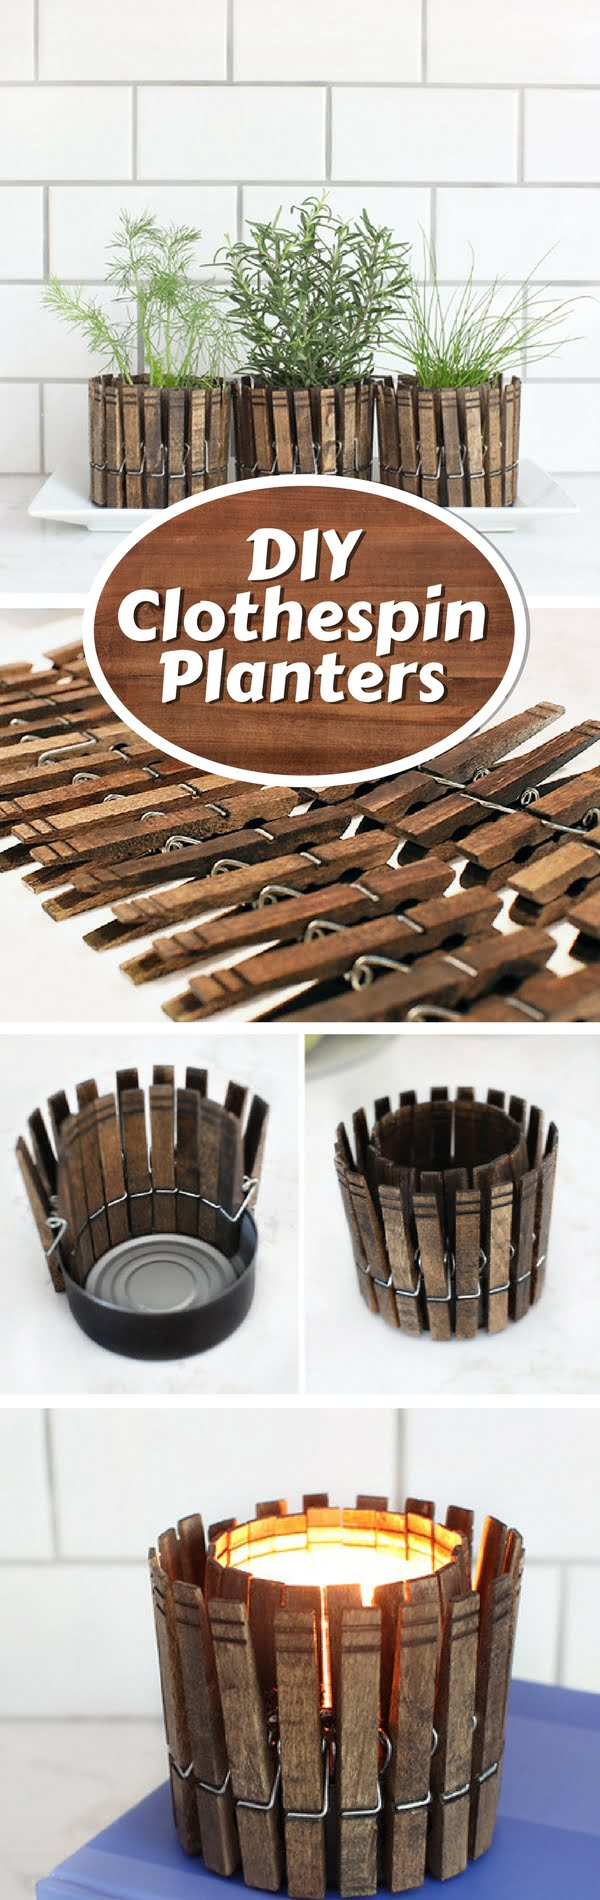 Check out how to make DIY planters from clothespins